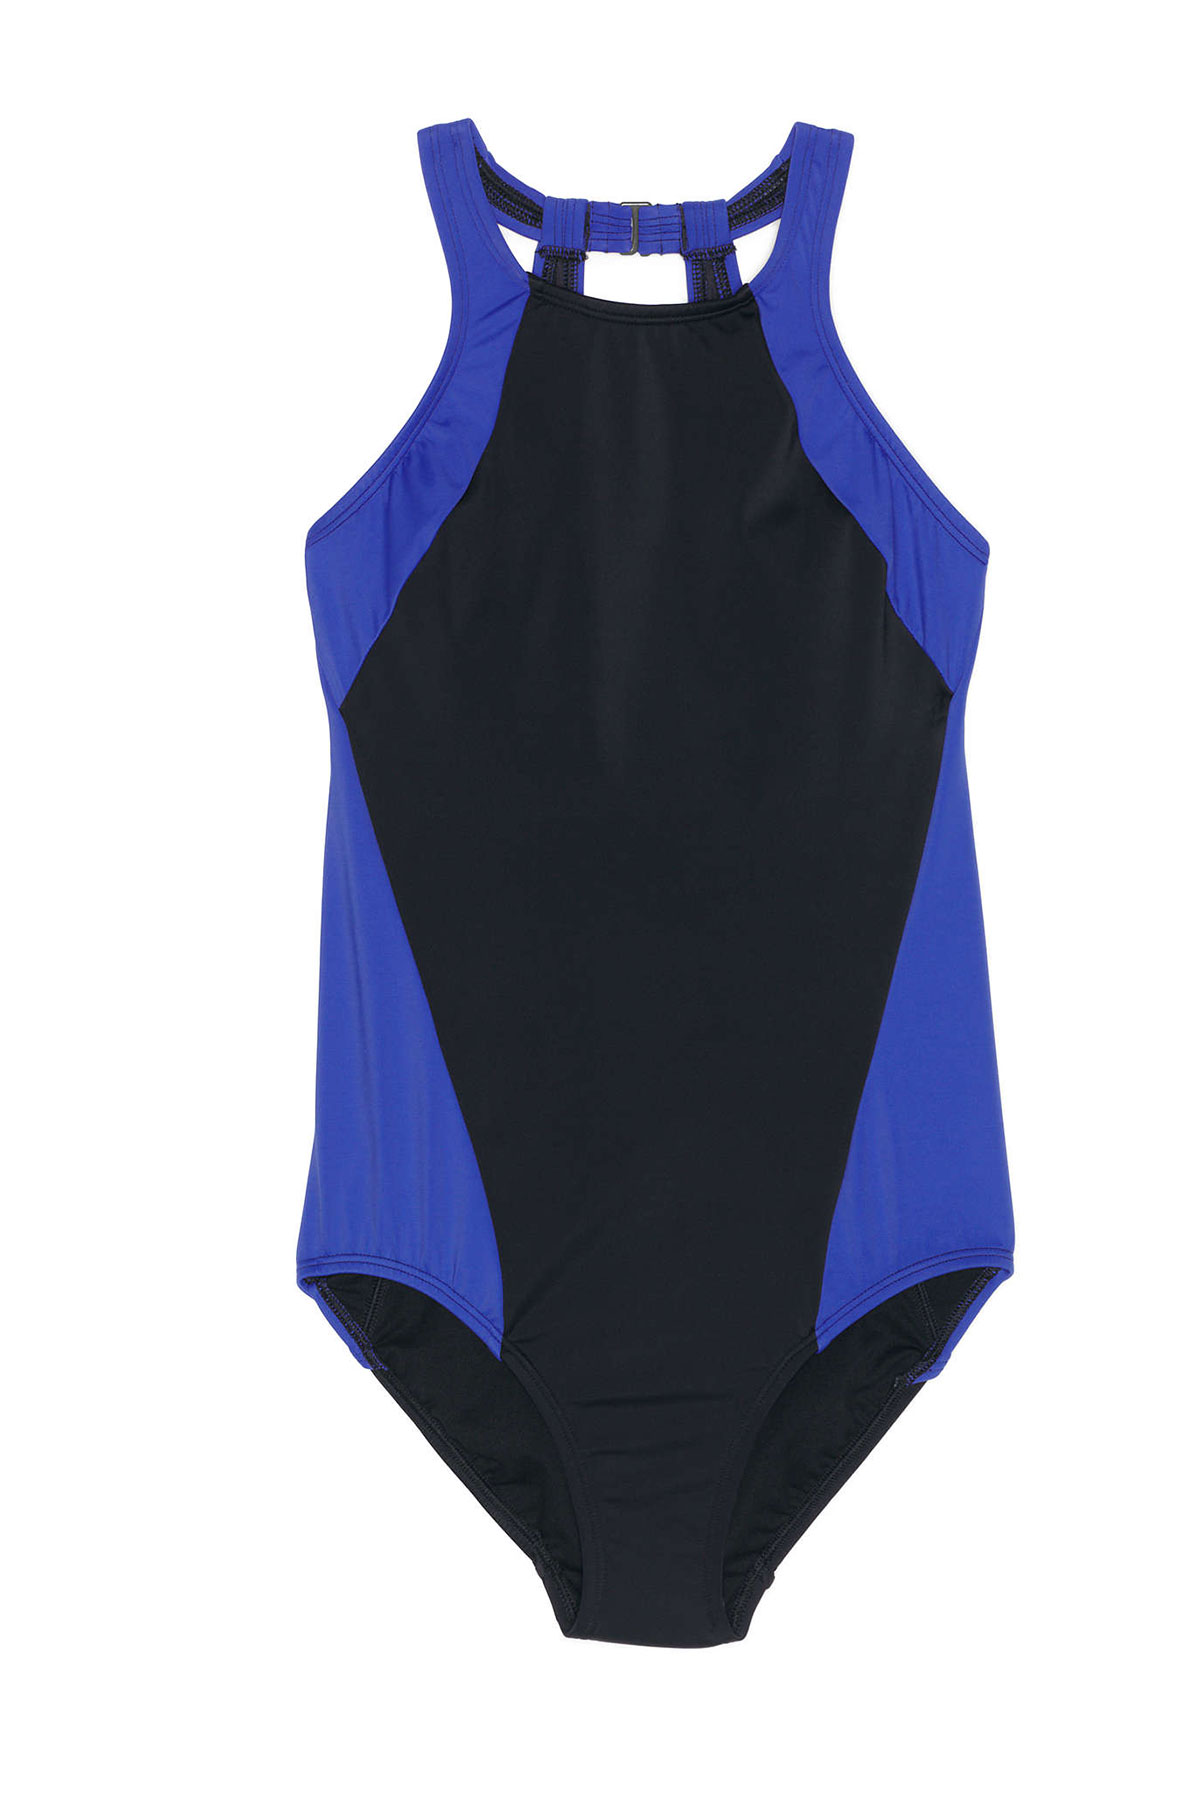 Lands' End High Neck One-Piece Swimsuit